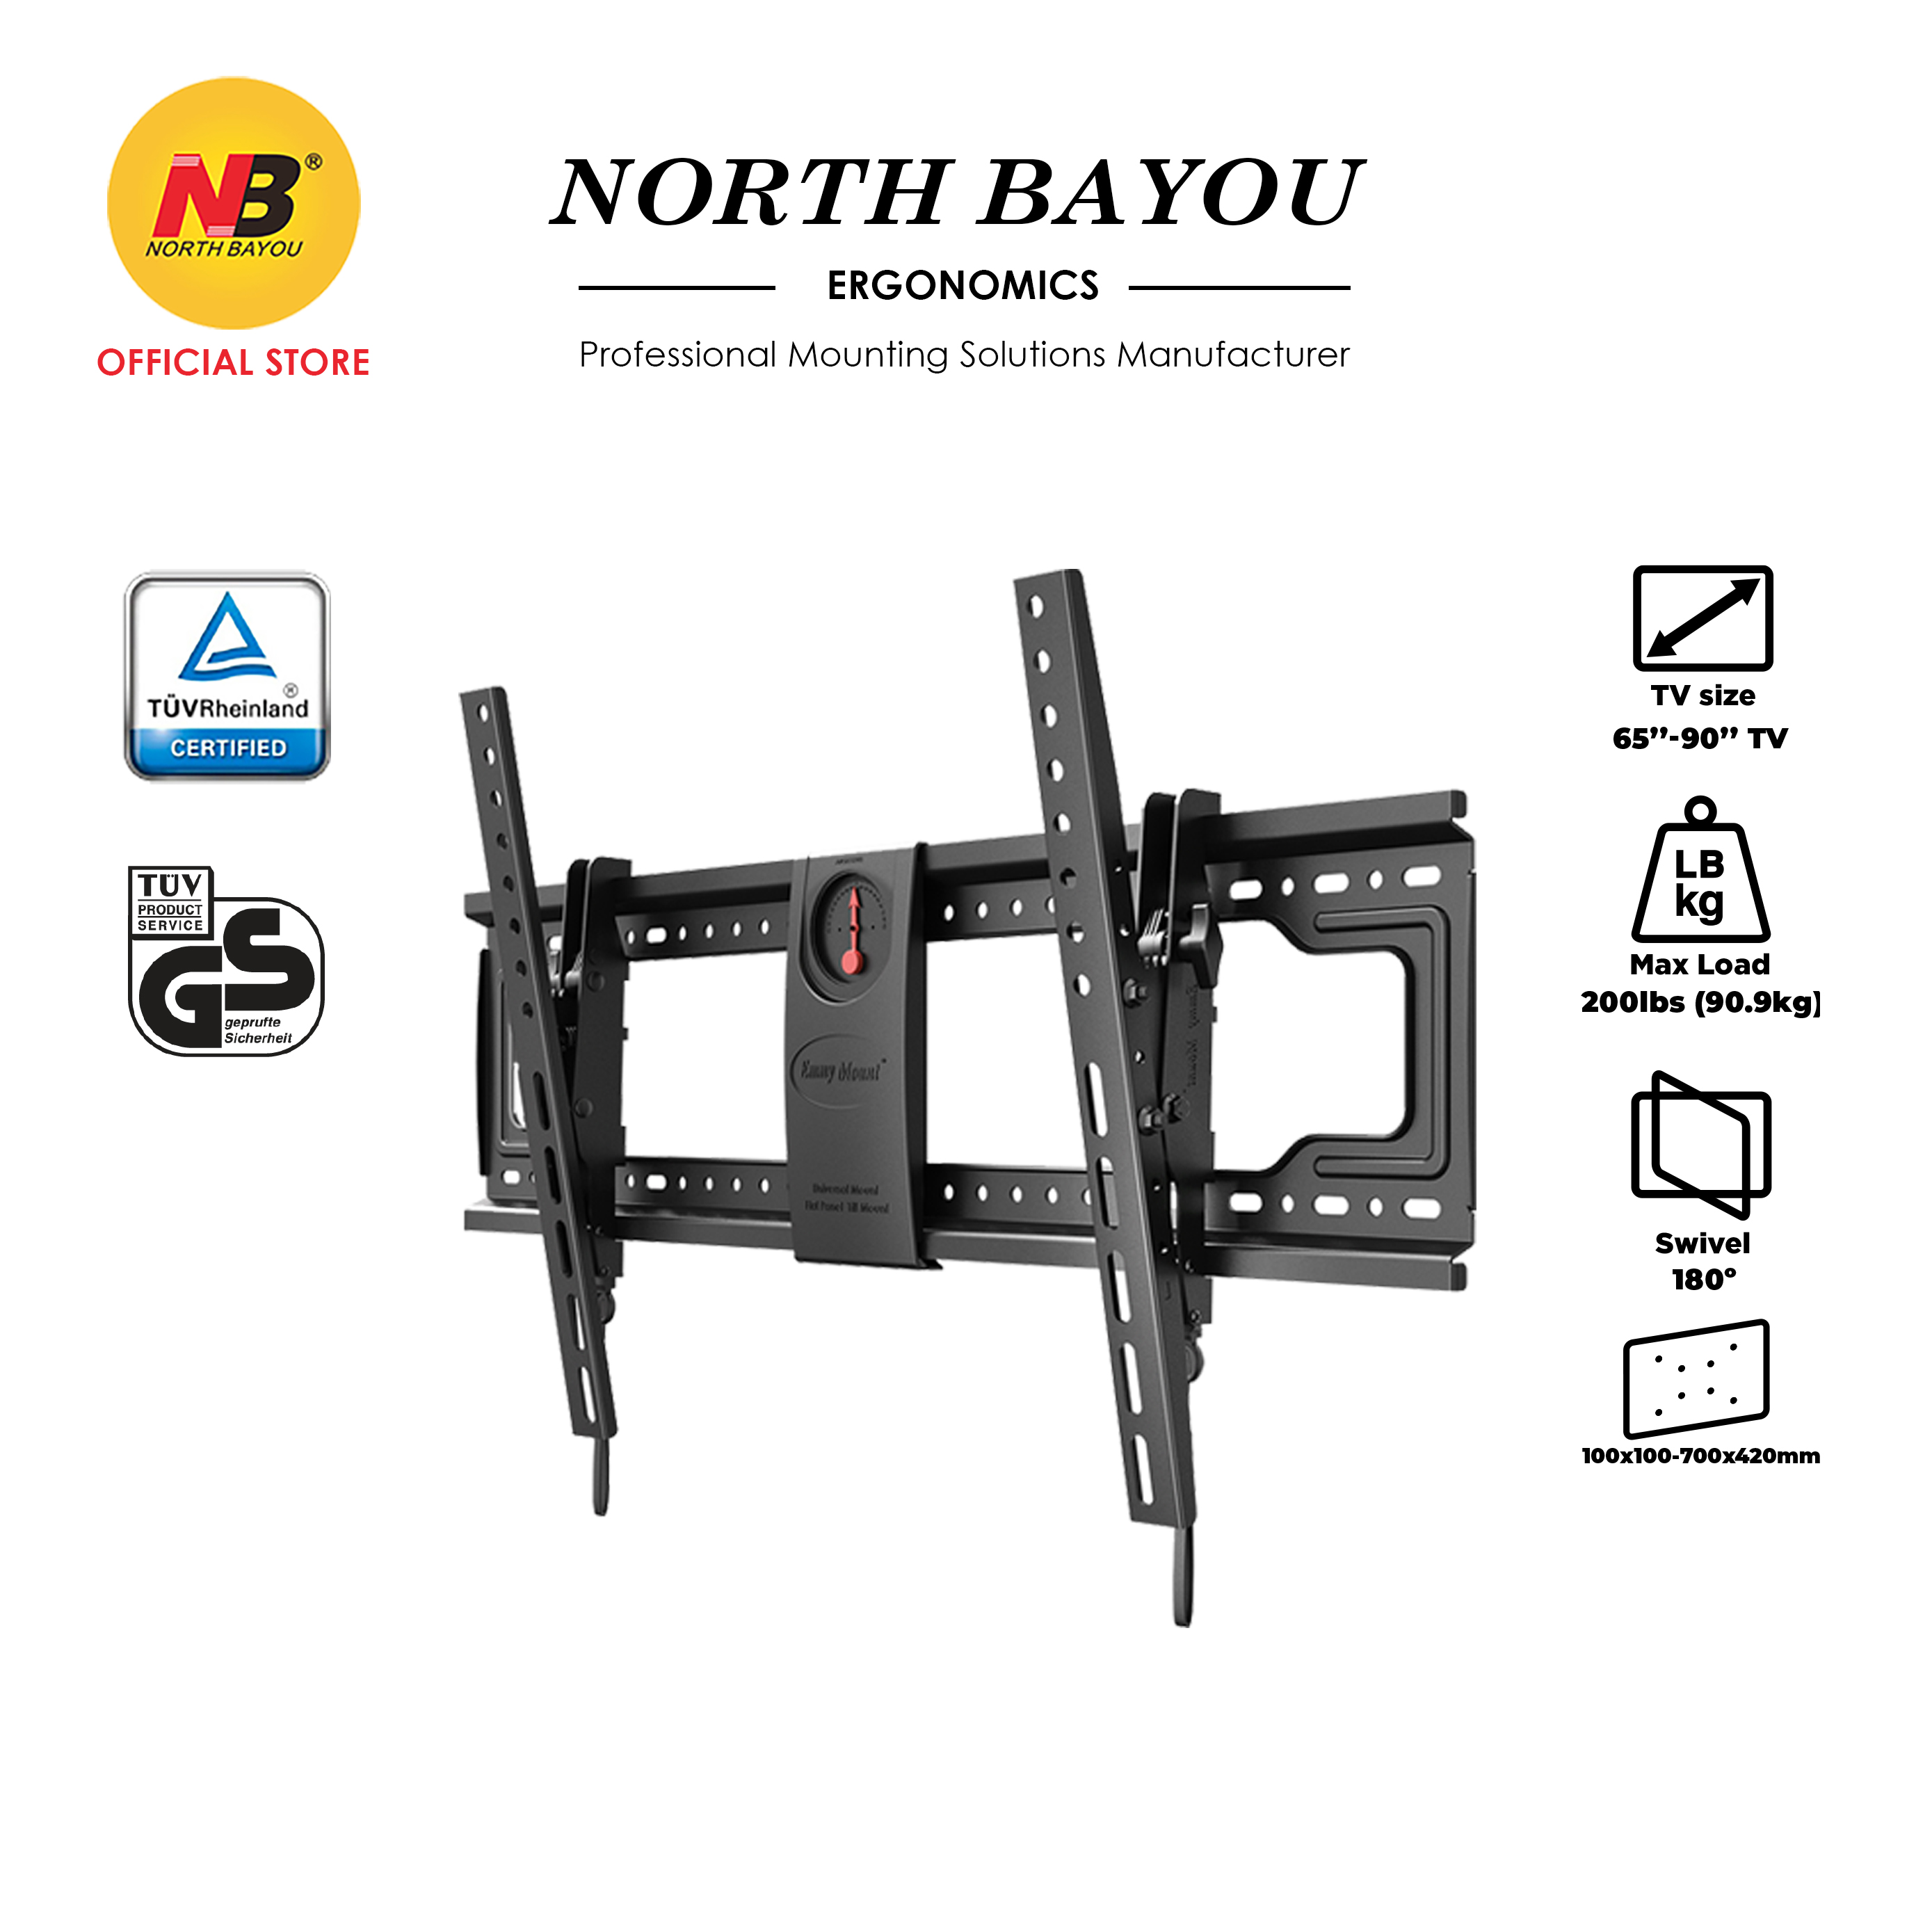 """NB North Bayou DF80-T Ergo Height Adjust Fixed TV Wall Mount Bracket Ultrathin Fit 65"""" to 90"""" LCD LED Flat Panel TV"""